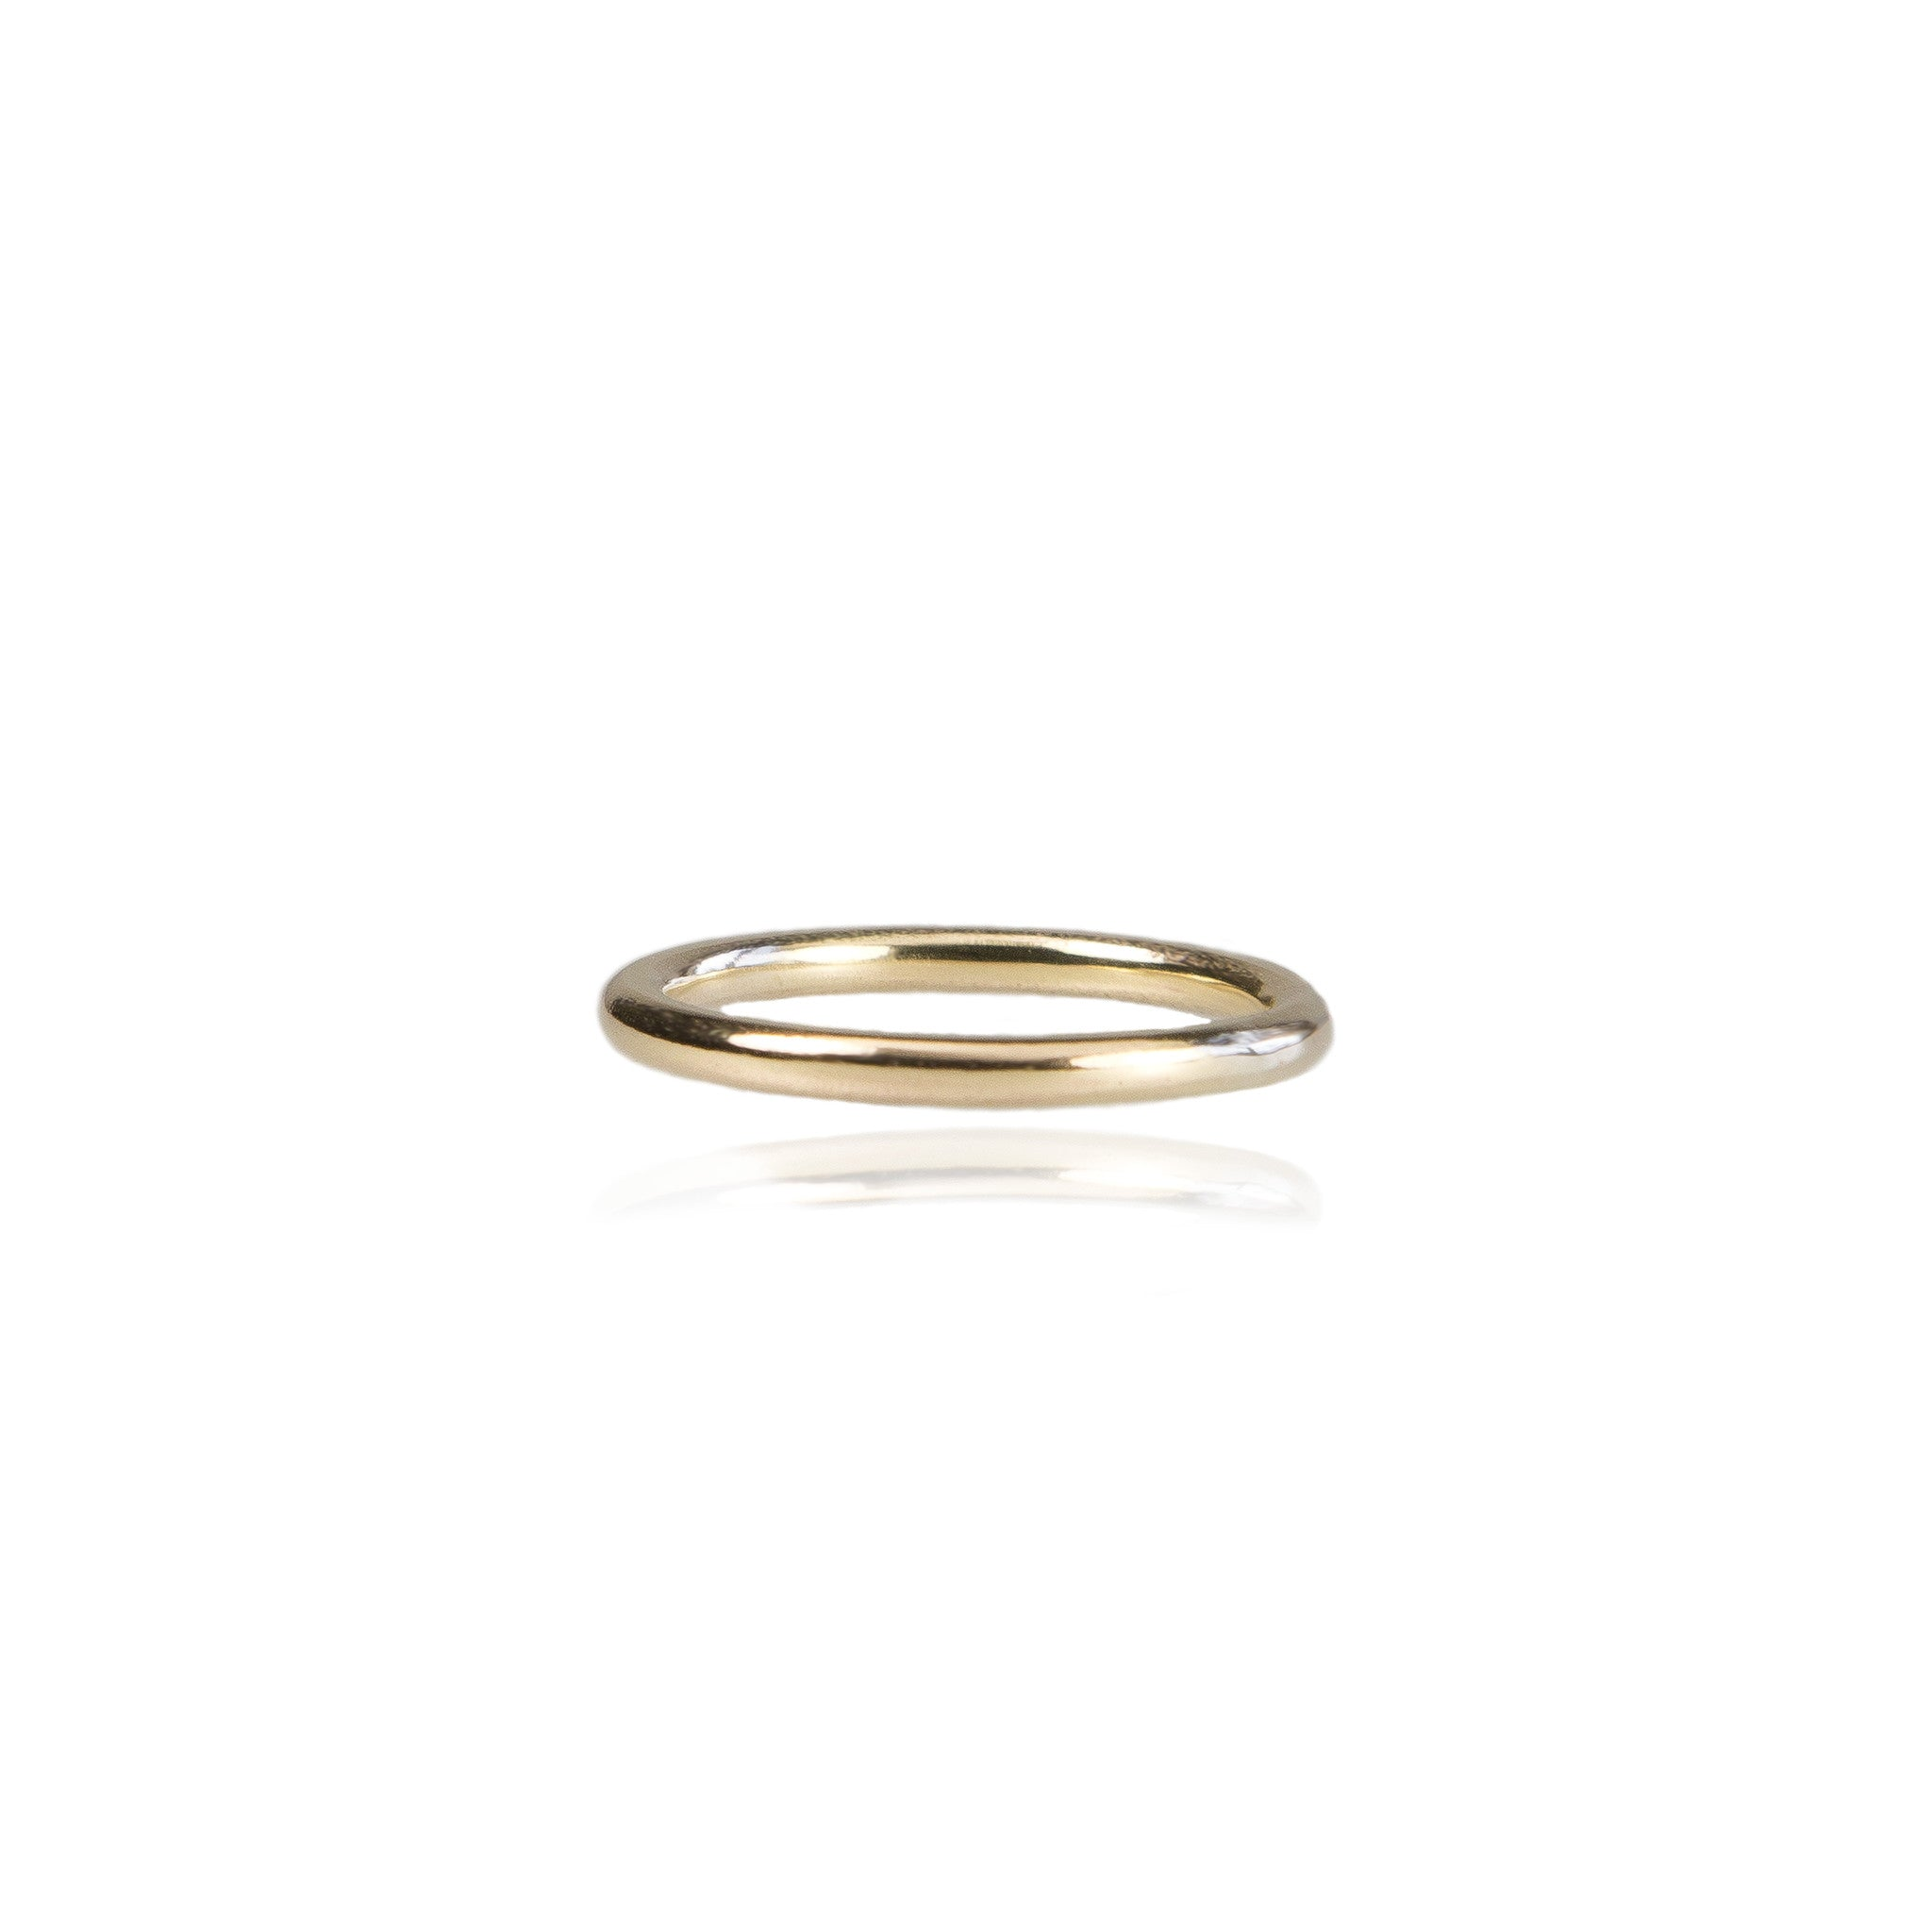 2mm Halo Wedding Ring - 18ct Yellow Gold